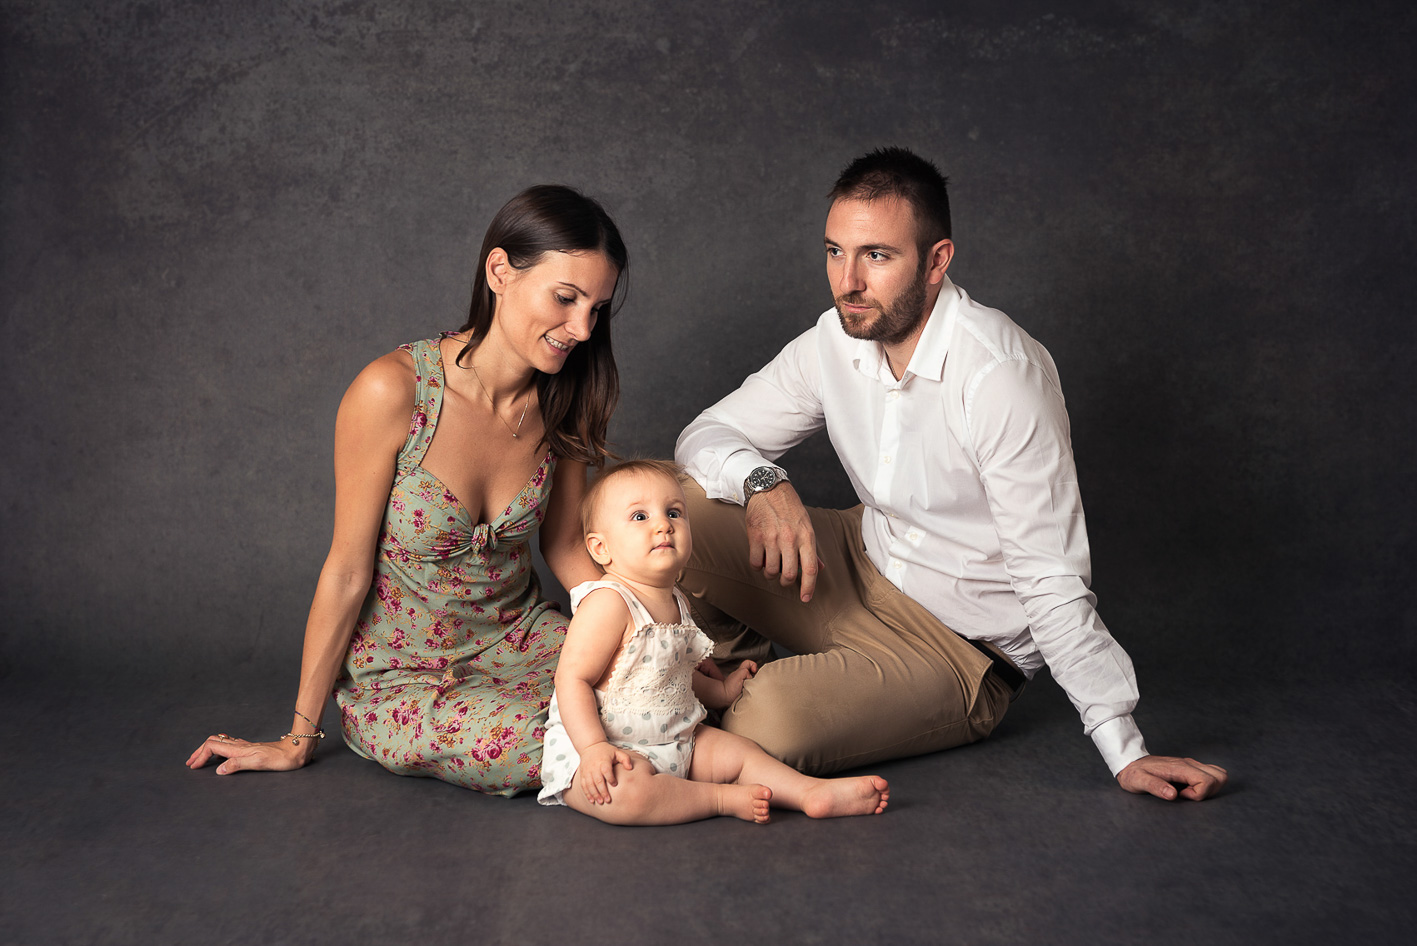 family-foto-tagg-photography-14